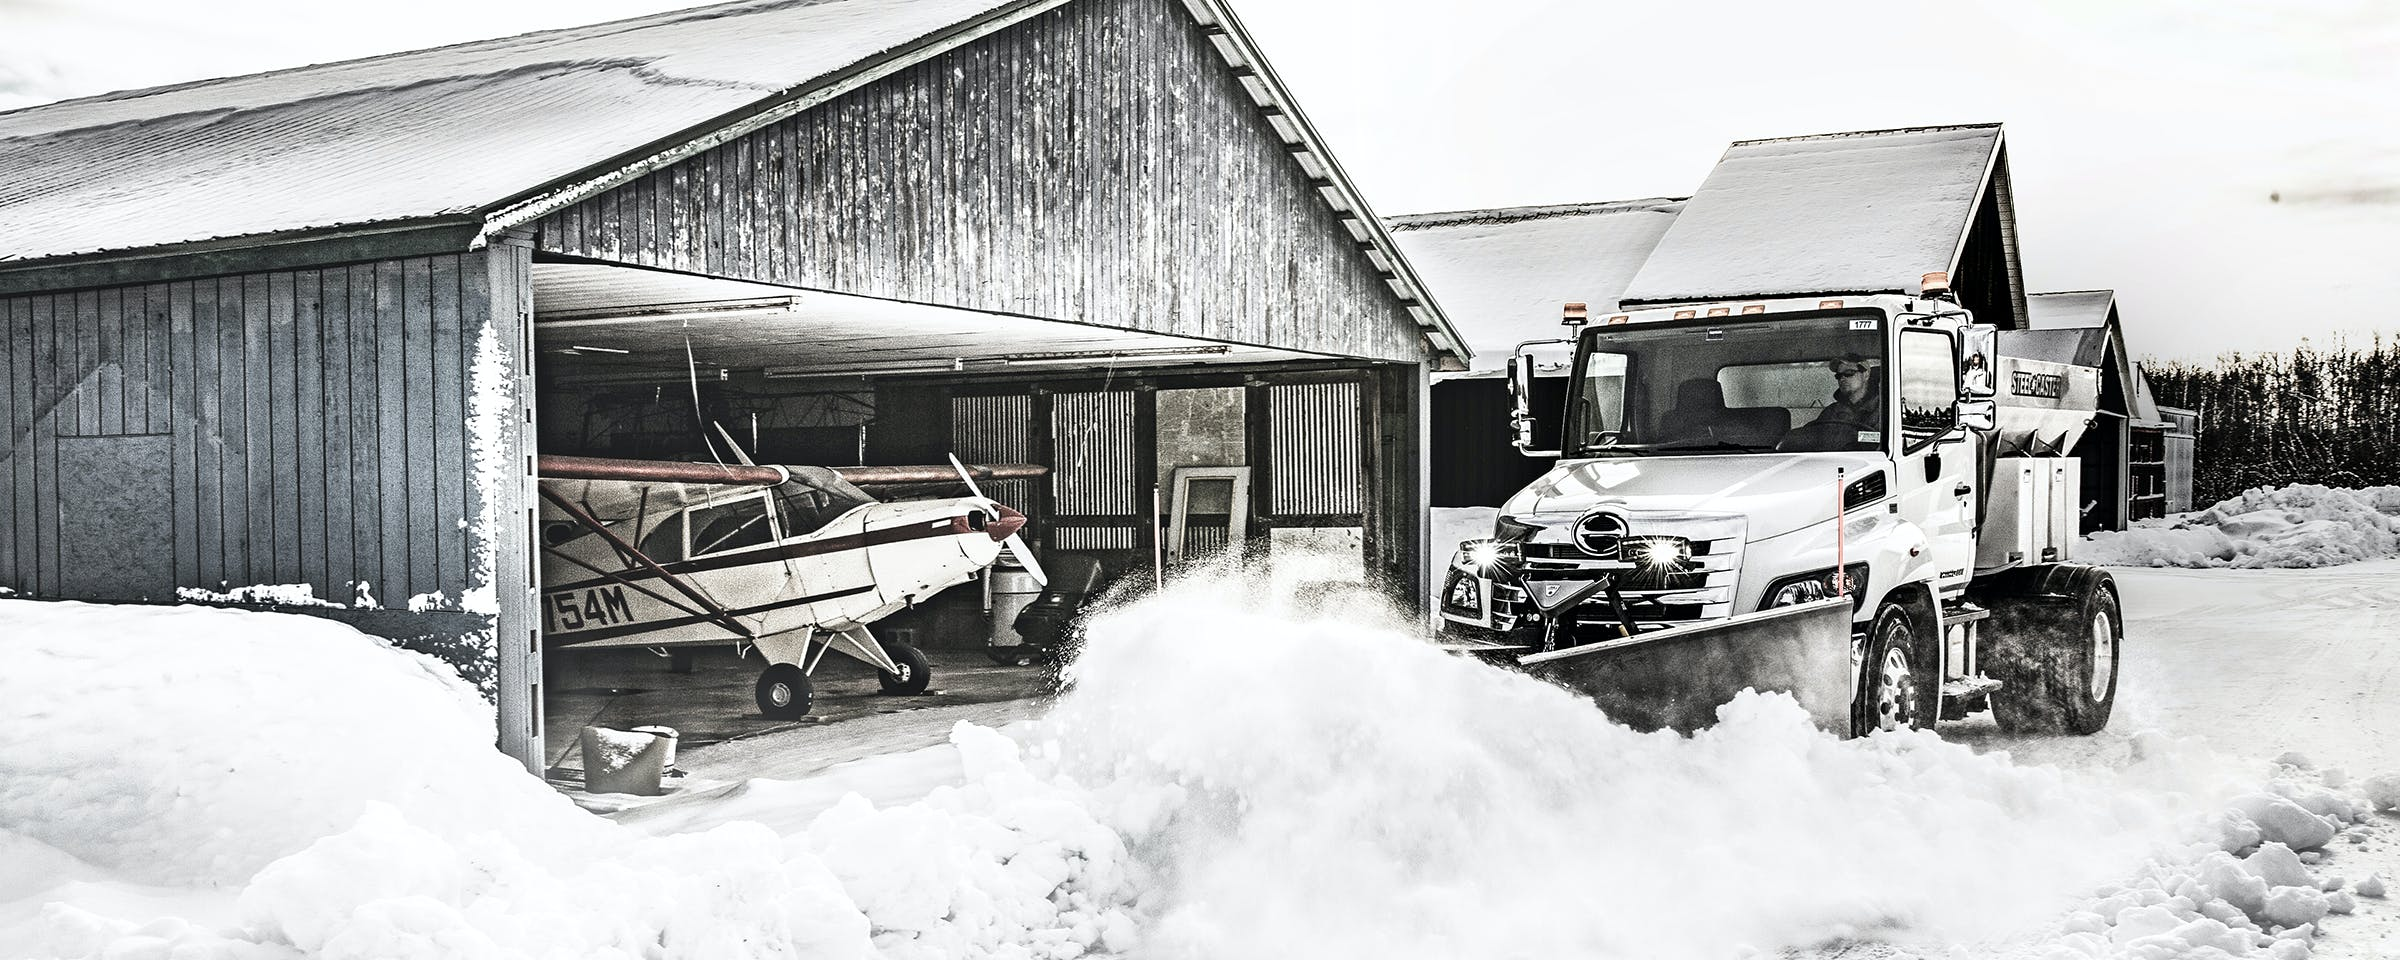 Whether you're a homeowner, property manager or snow contractor, FISHER offers a full line of high-quality snowplows to help you succeed: straight blades, v-plows, winged plows, and even plows for UTVs and compact equipment.